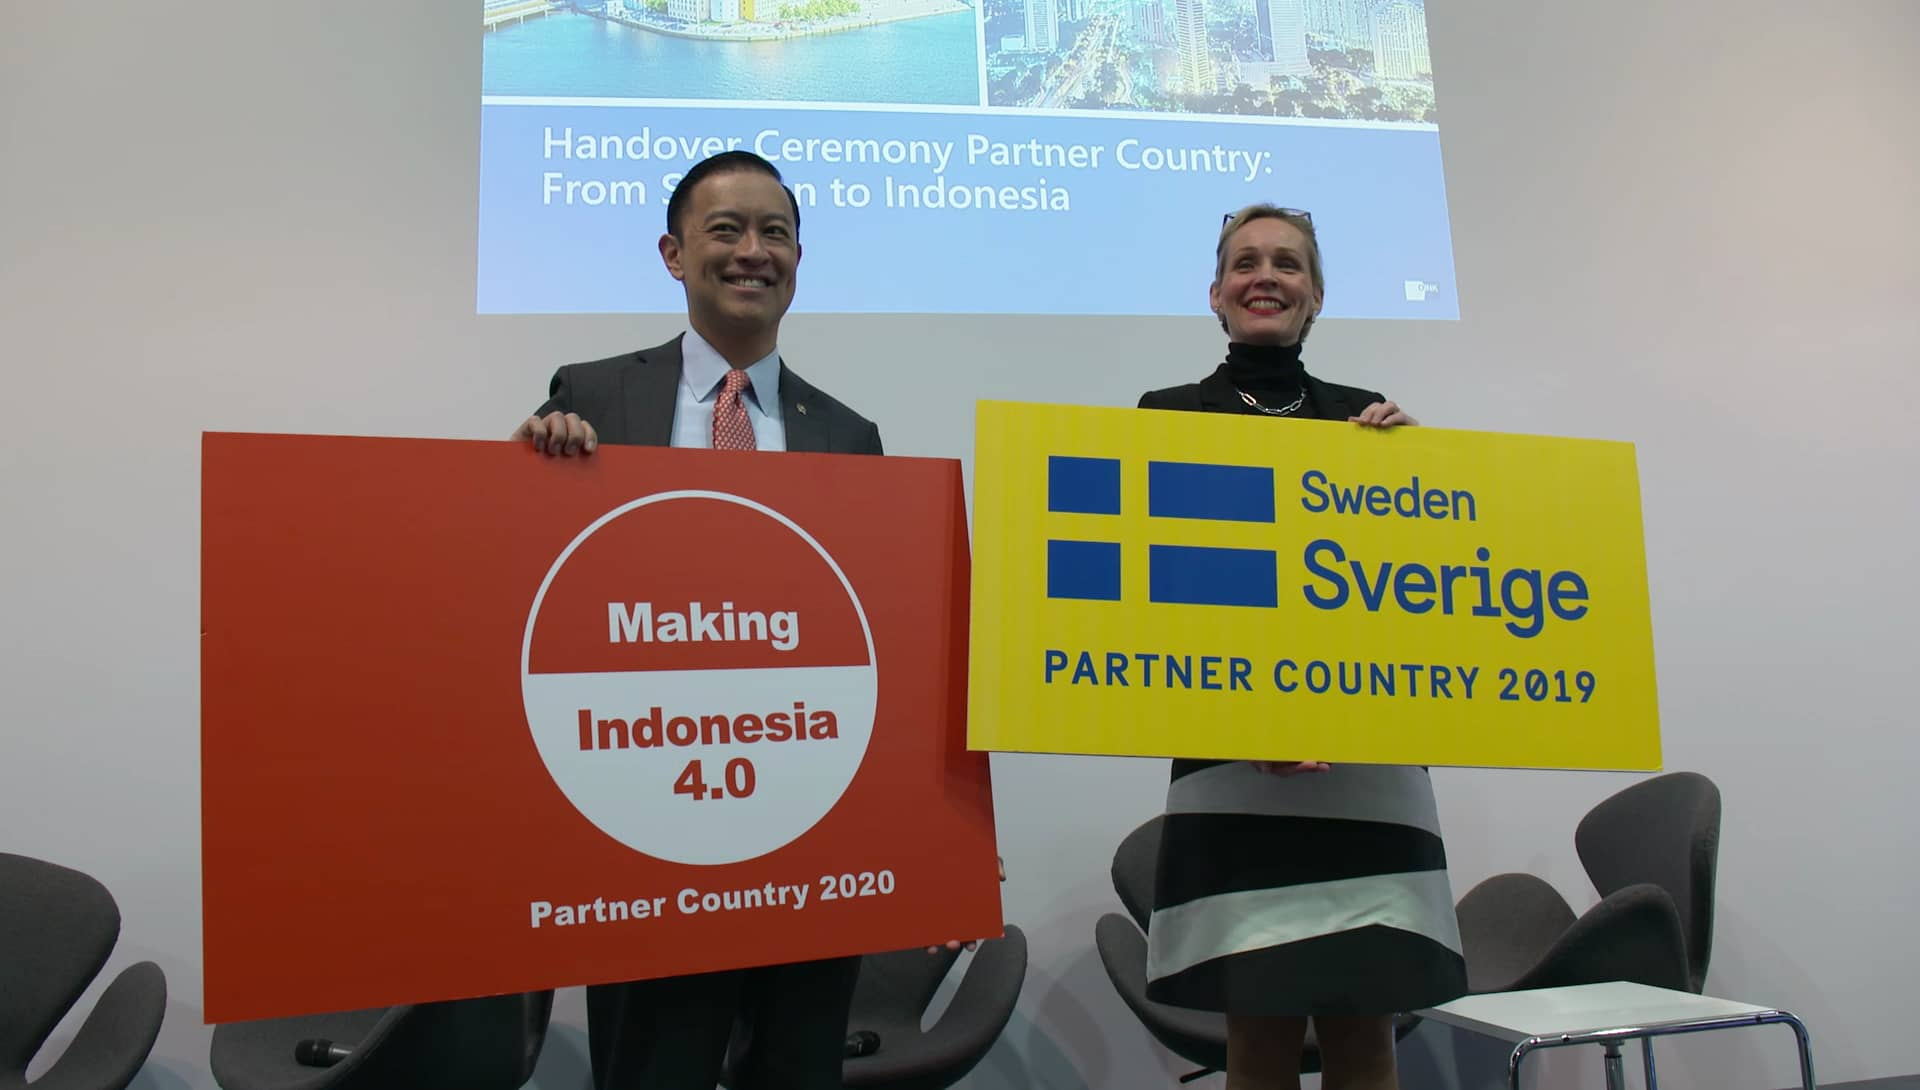 Hannover Messe 2019 - Handover Ceremony Partner Country: From Sweden to Indonesia